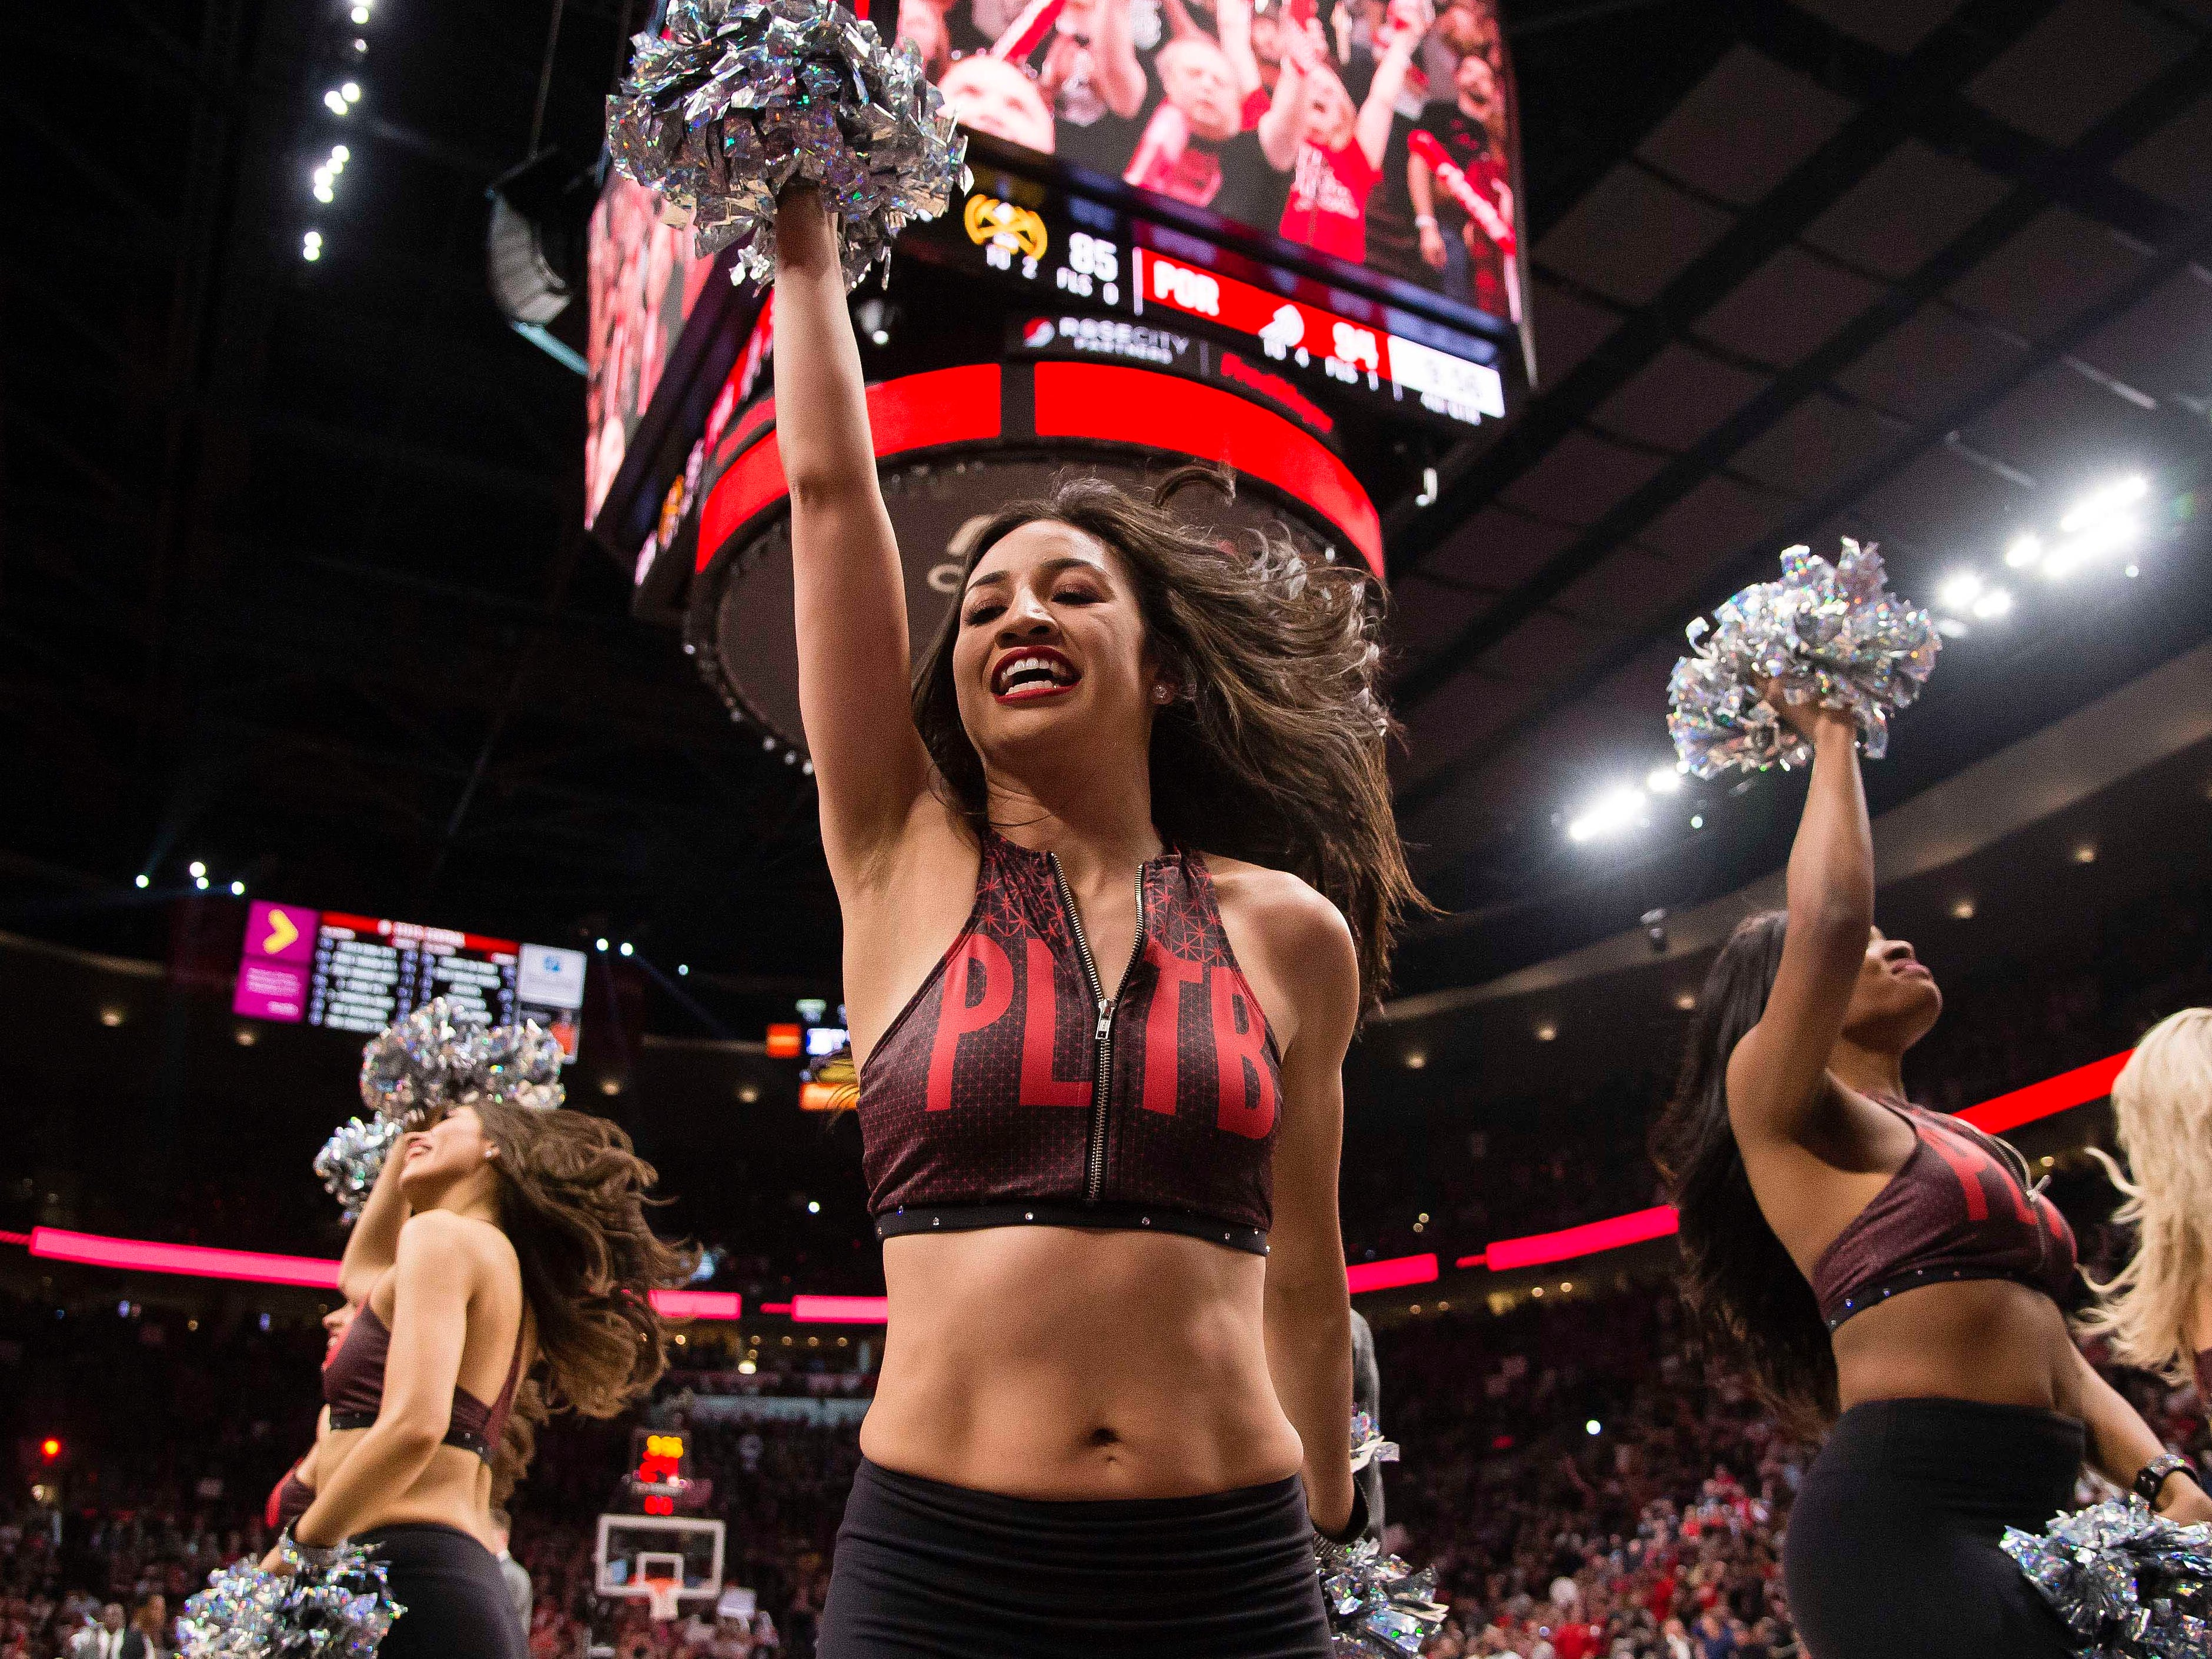 May 9: The Blazers cheer team fires up the crowd during Game 6 against the nuggets in Portland.